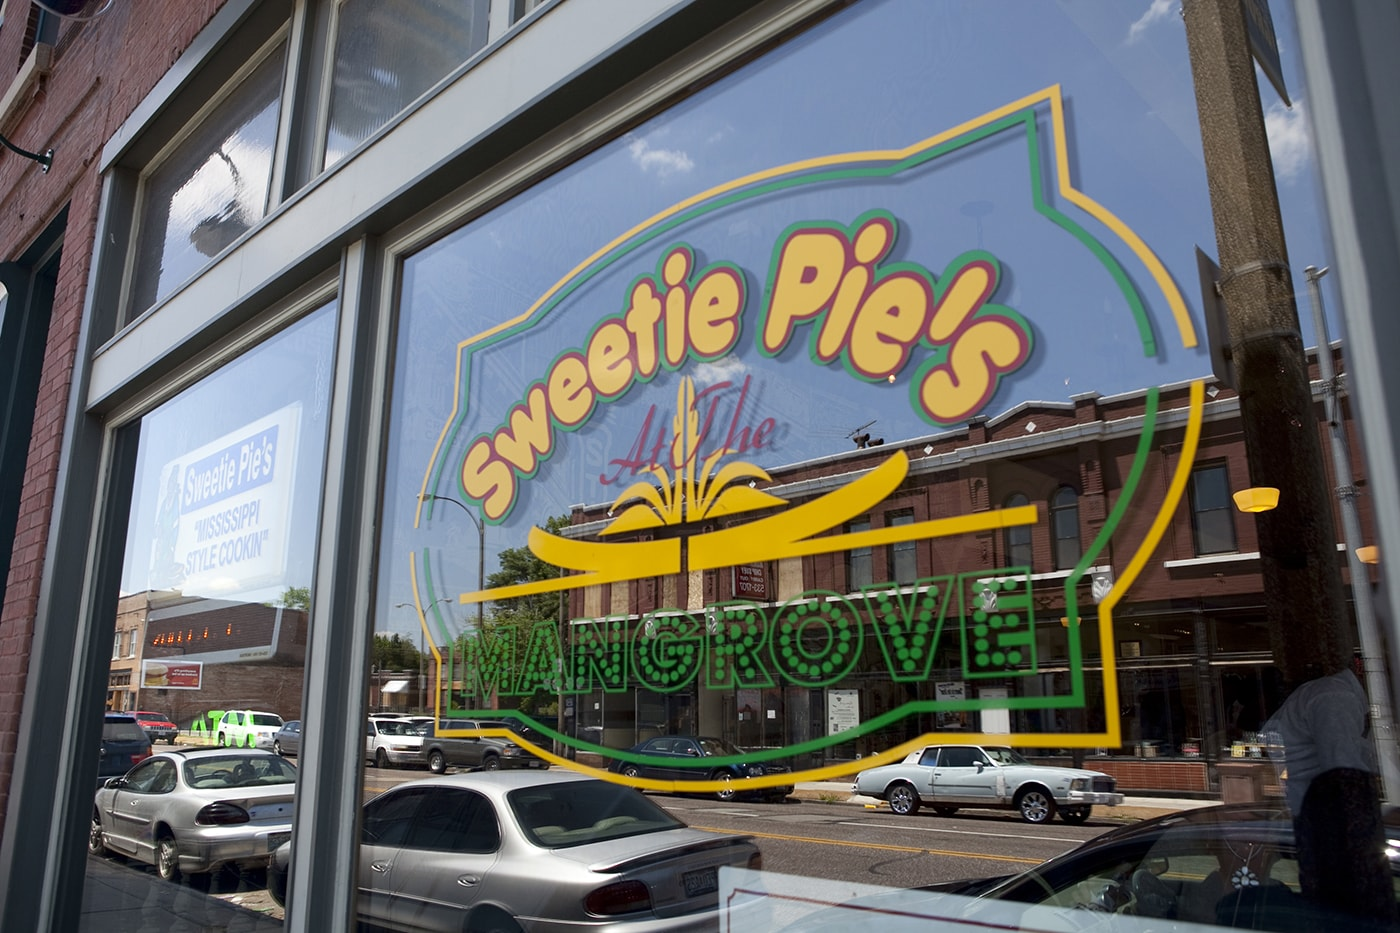 Sweetie Pie's - A Lunch Stop in St. Louis, Missouri